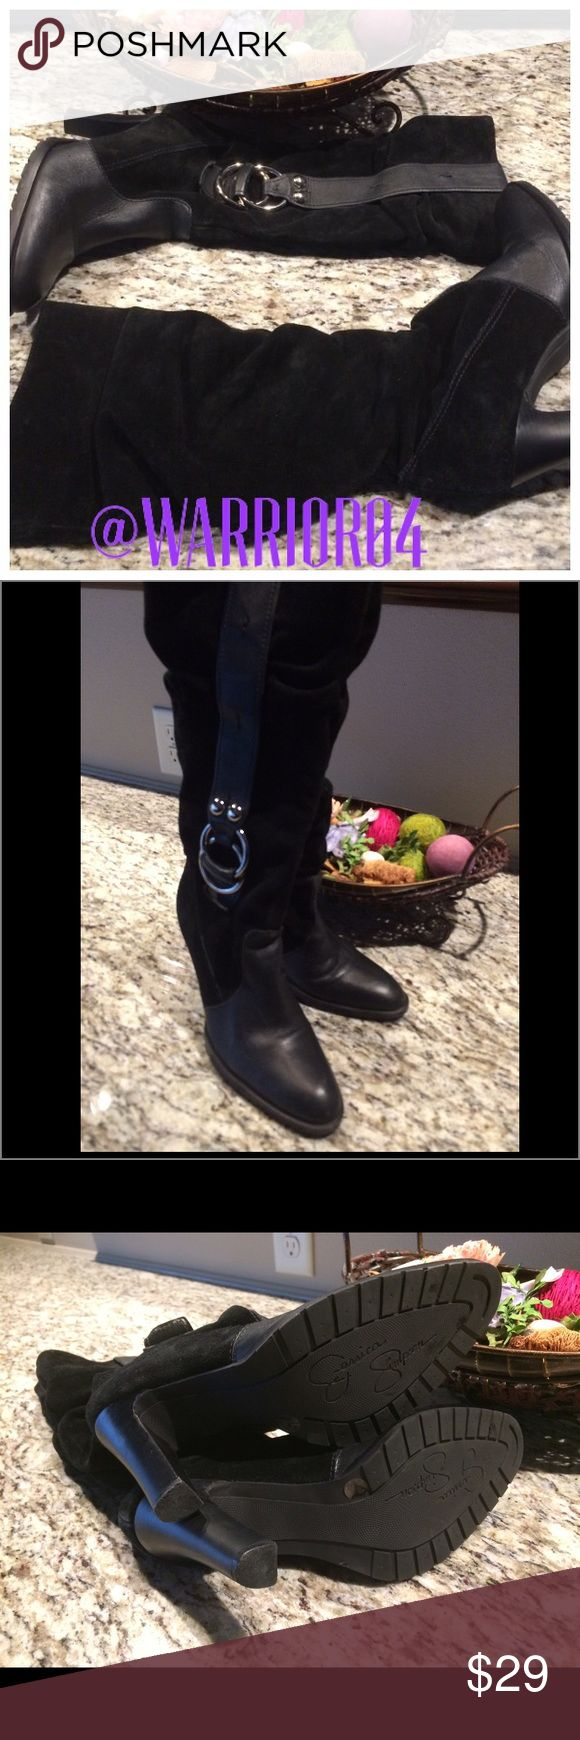 Jessica Simpson Slouchy Heeled Boots Size 6.5 Jessica Simpson Slouchy Heeled Boots Size 6.5 Jessica Simpson Shoes Heeled Boots